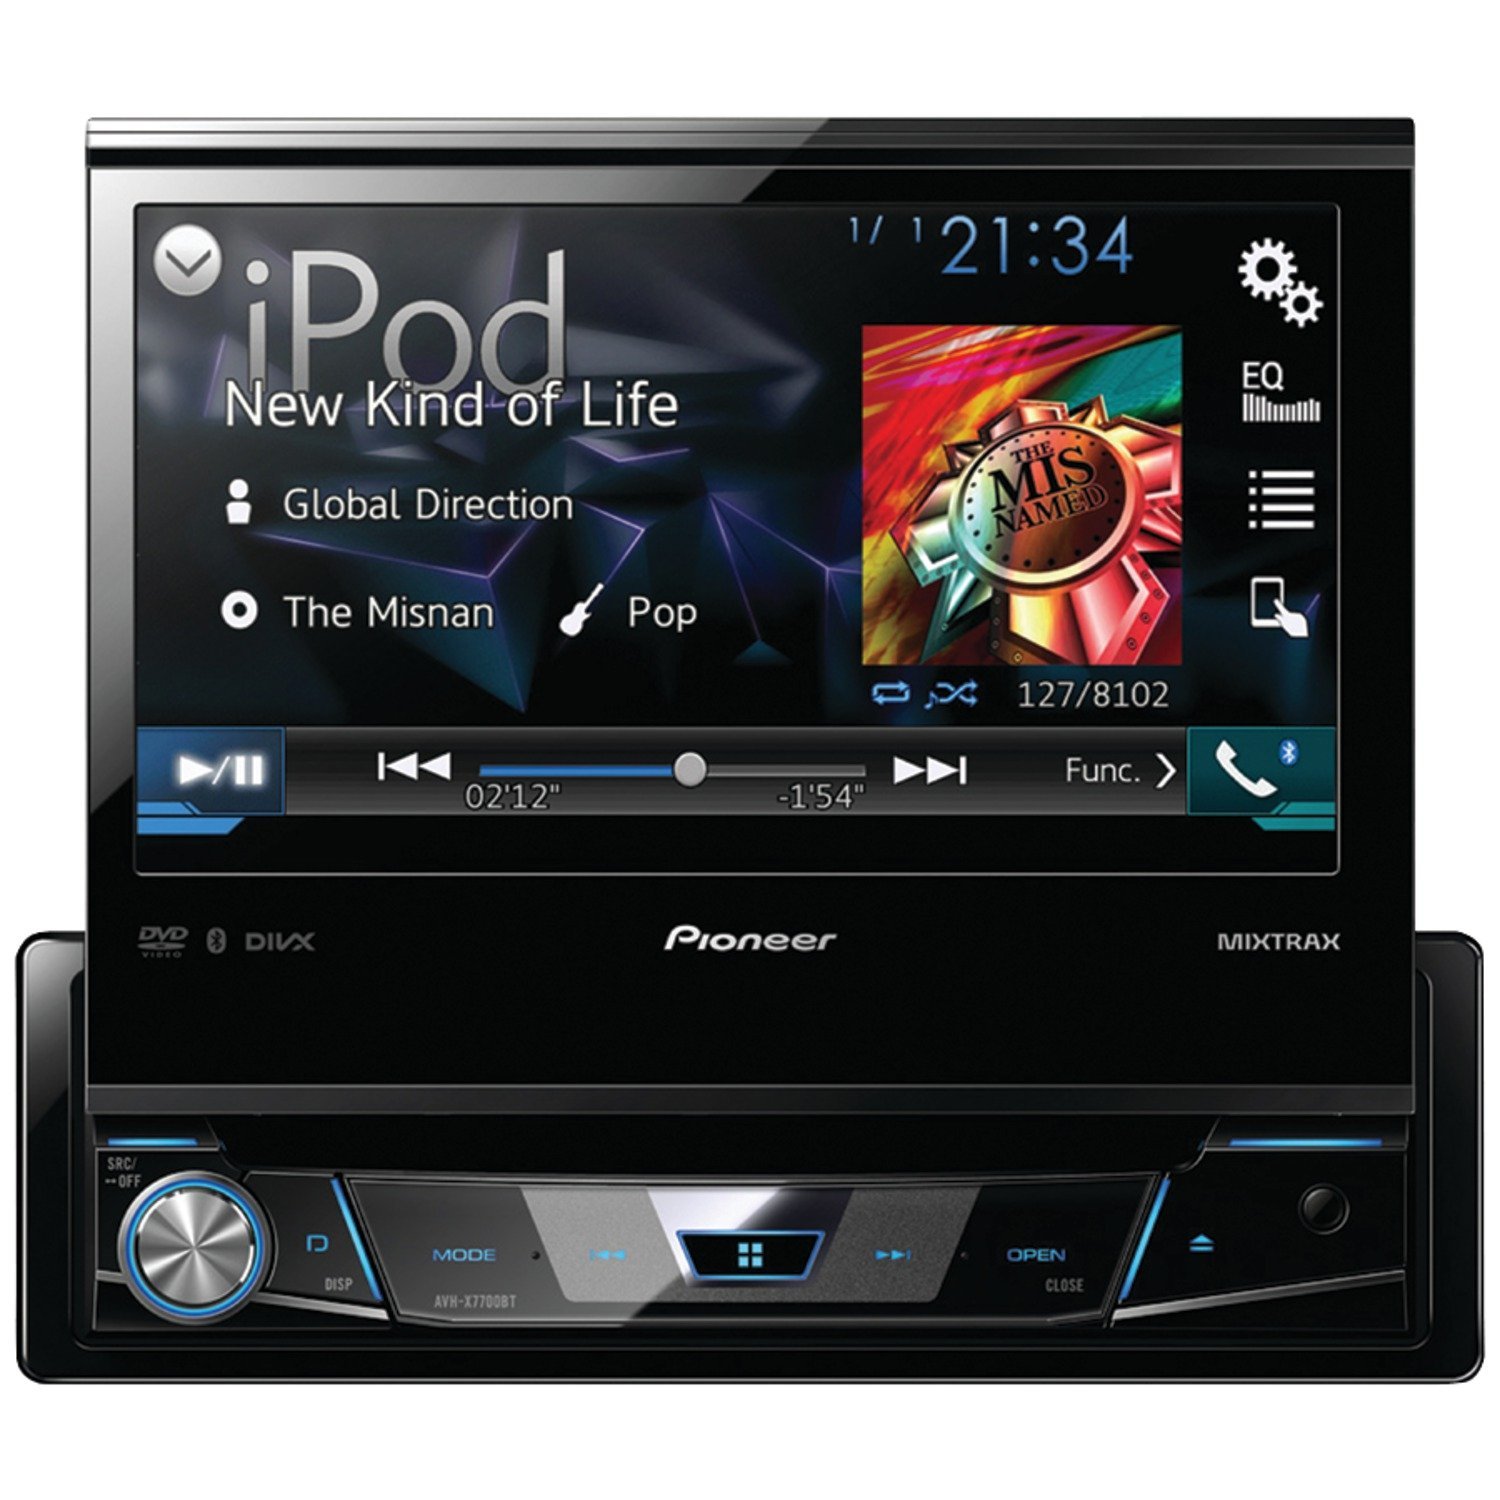 71XXlIe2M3L._SL1500_ amazon com pioneer avhx7700bt 7 inch flipout bt dvd usb aux nav r  at cos-gaming.co